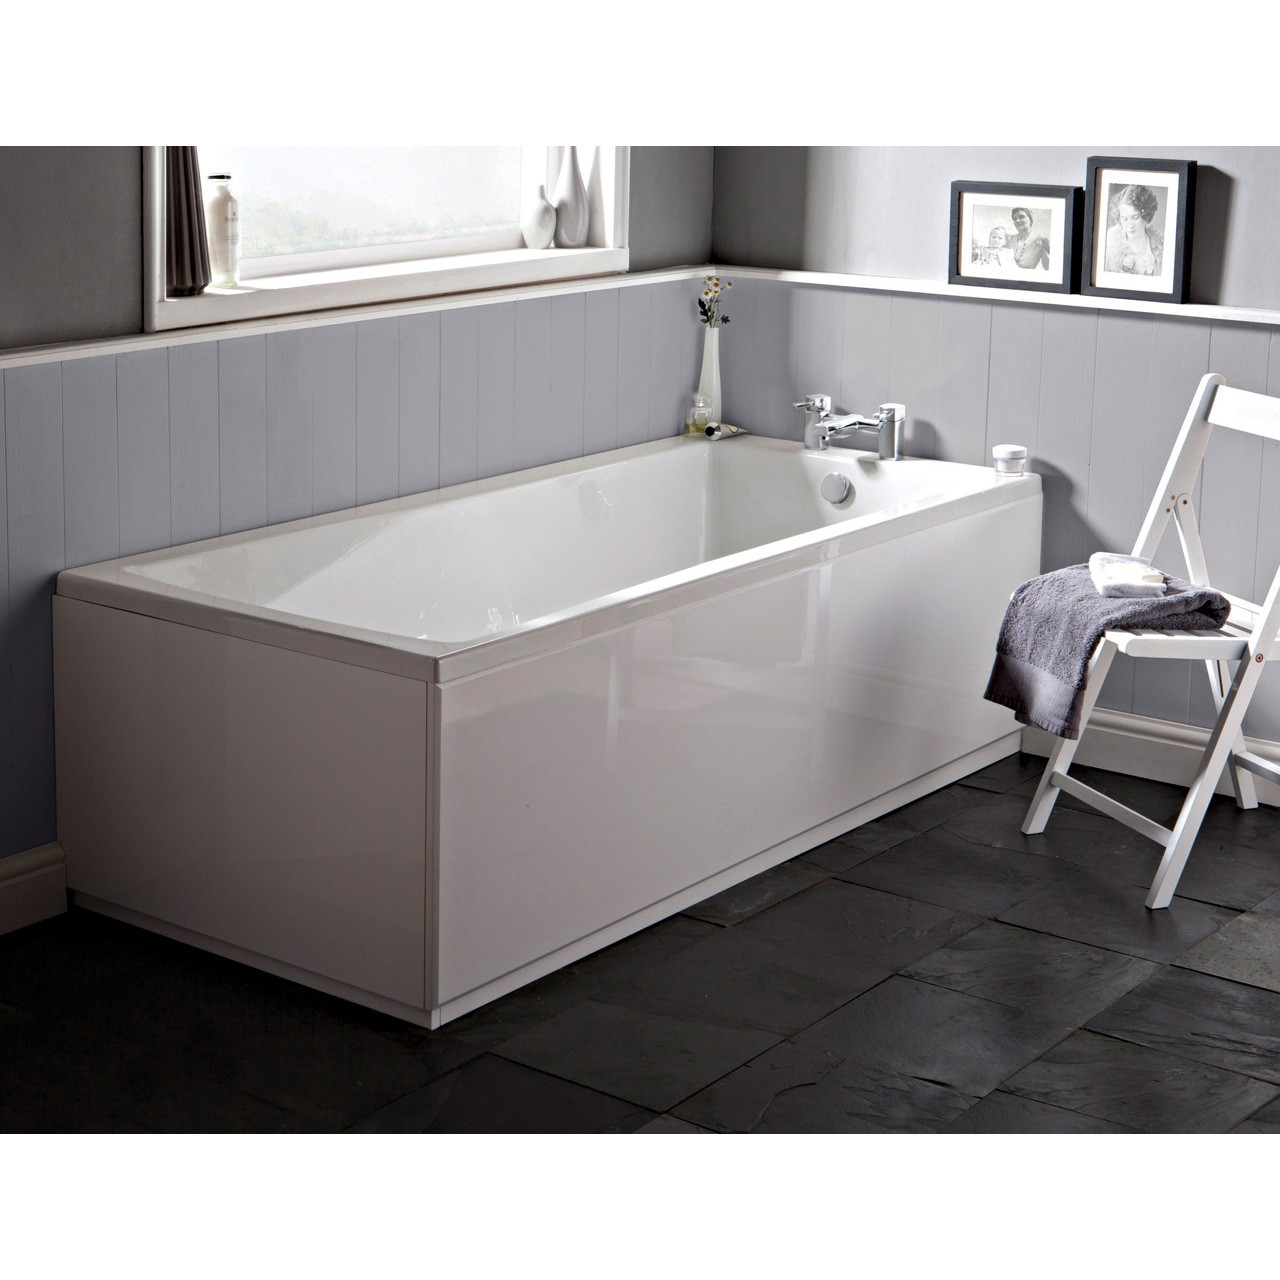 Premier Square Single Ended Bath 1700mm x 750mm - NBA410